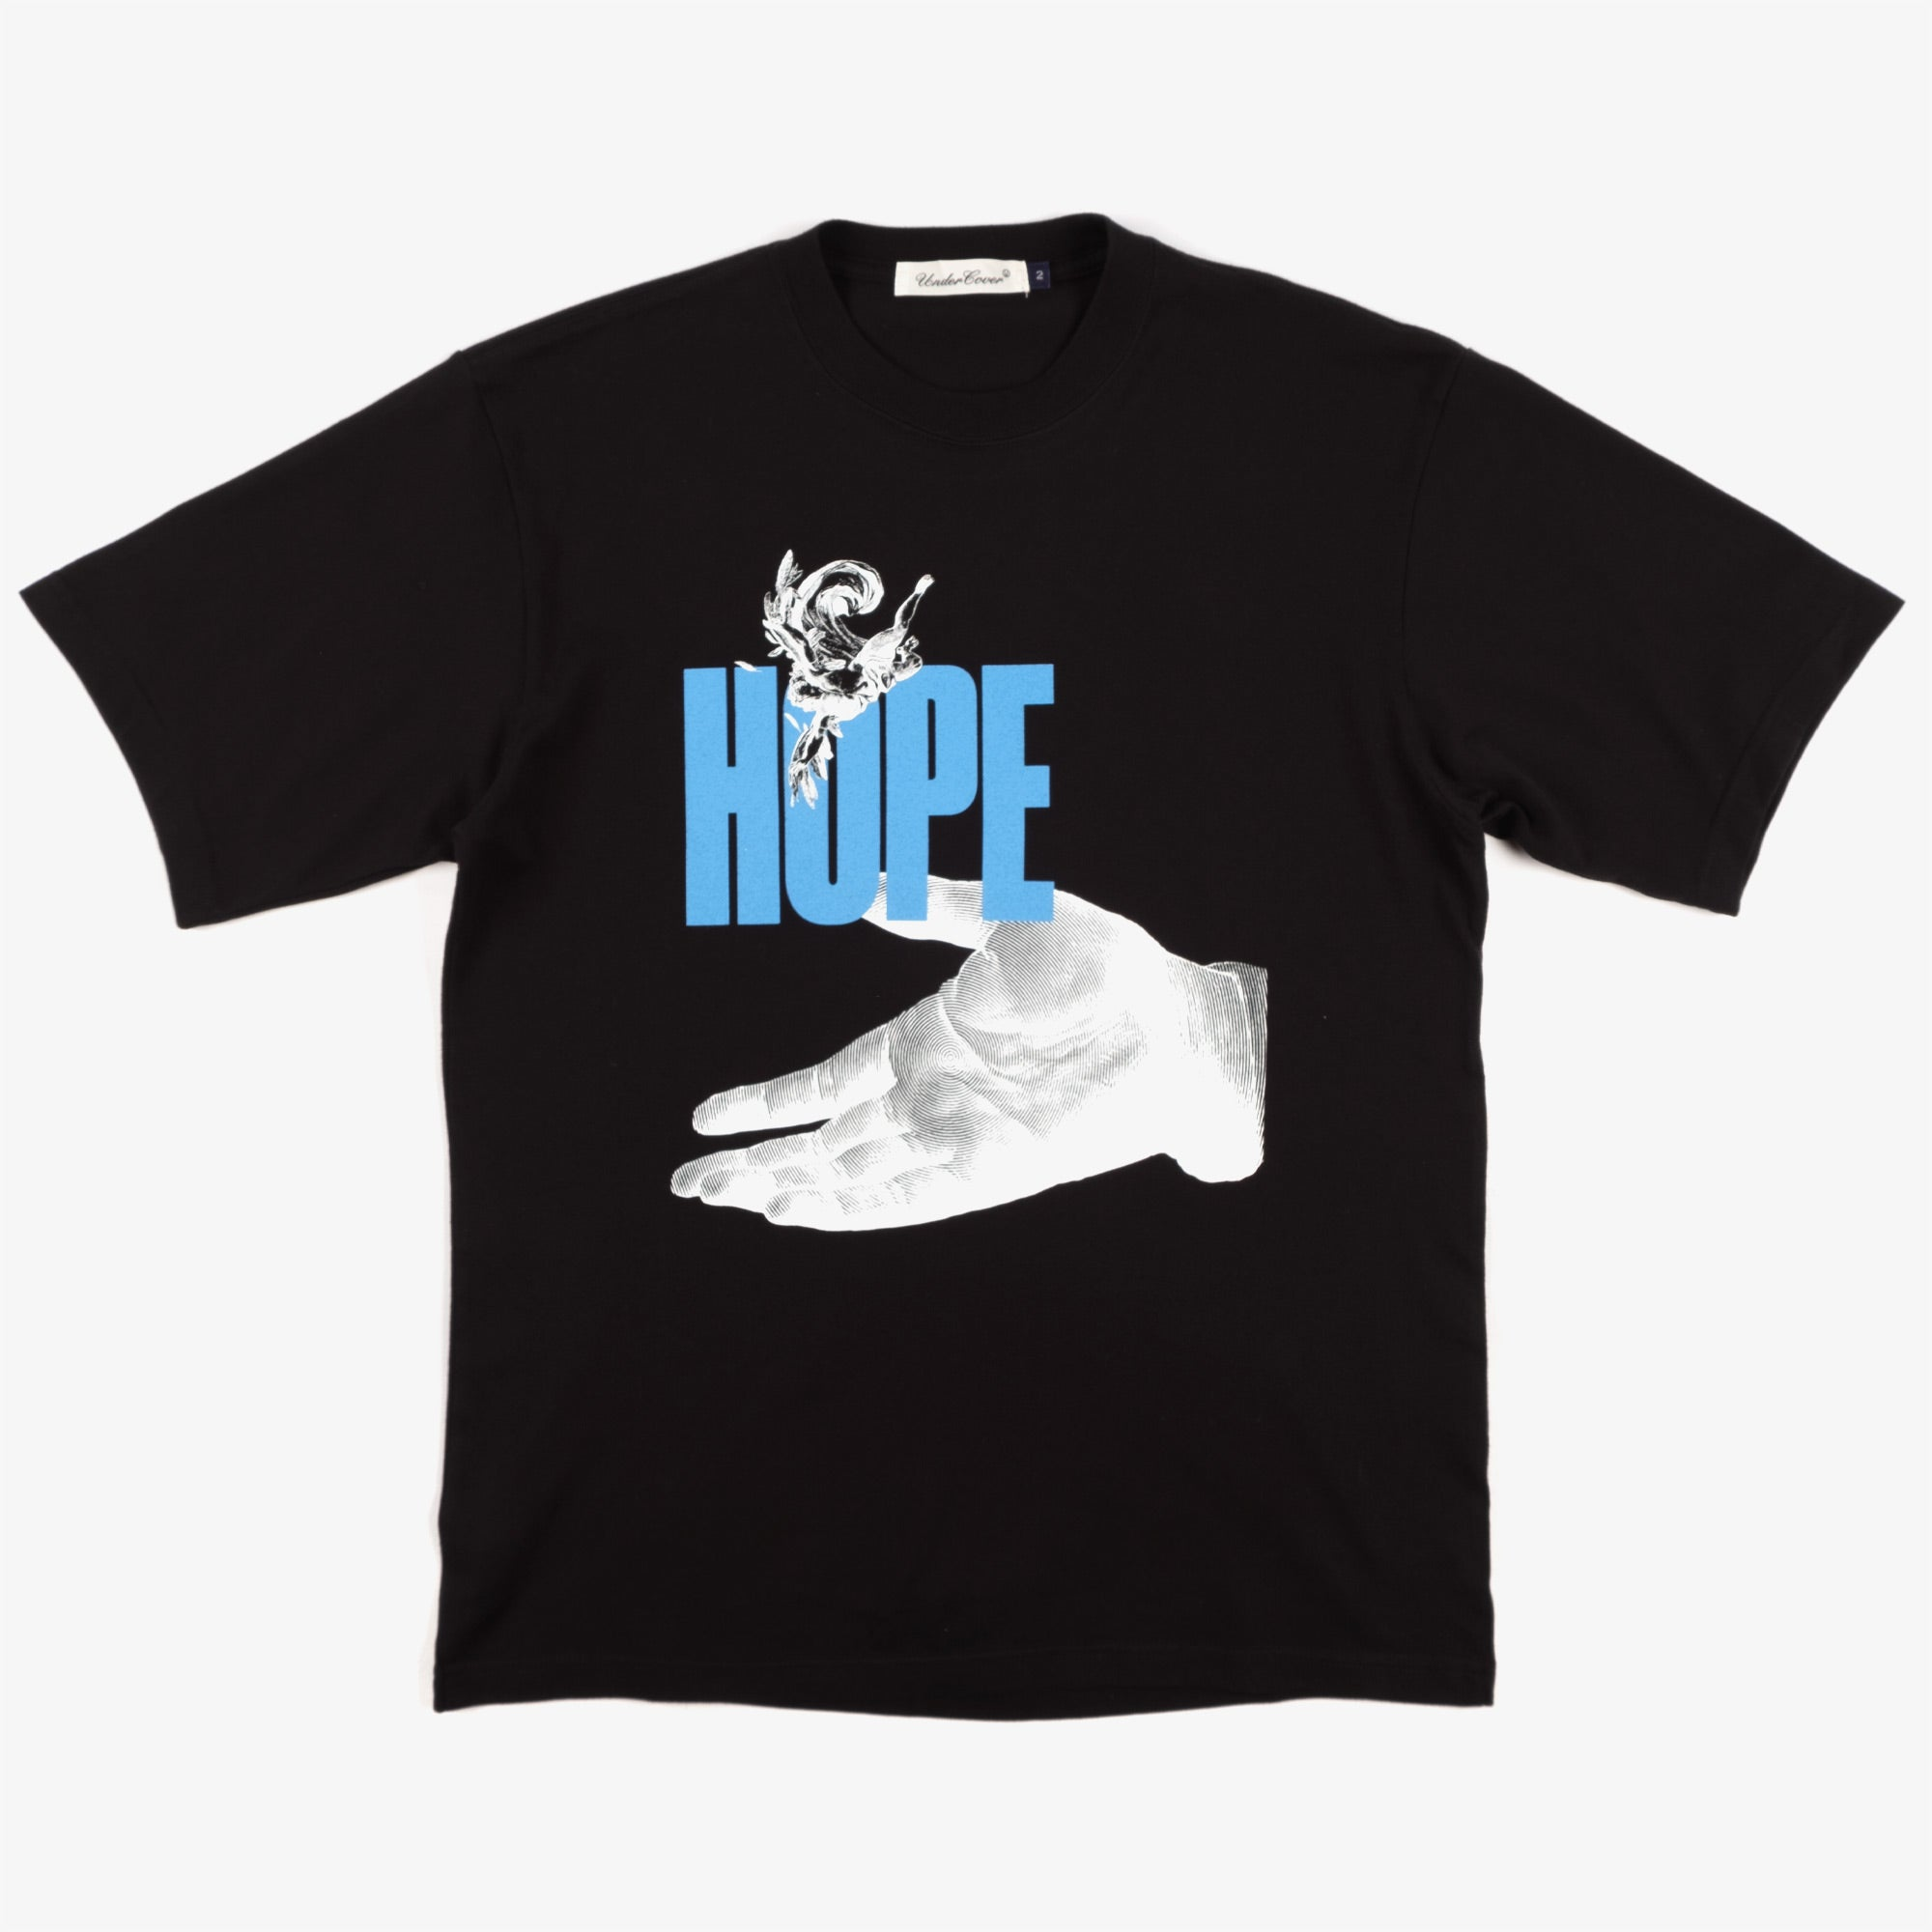 Undercover Hope Tee UC2A3801 - Black 1